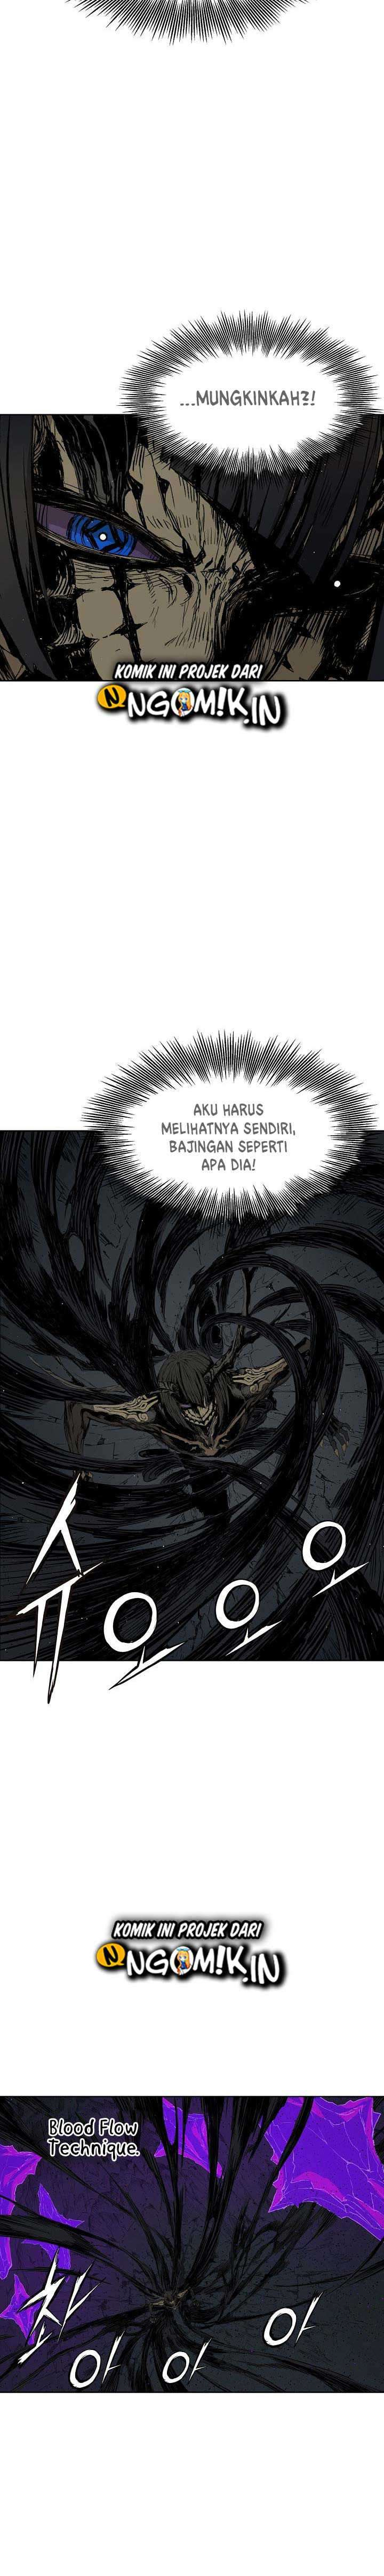 Sword Sheath's Child Chapter 55 Bahasa Indonesia page 9